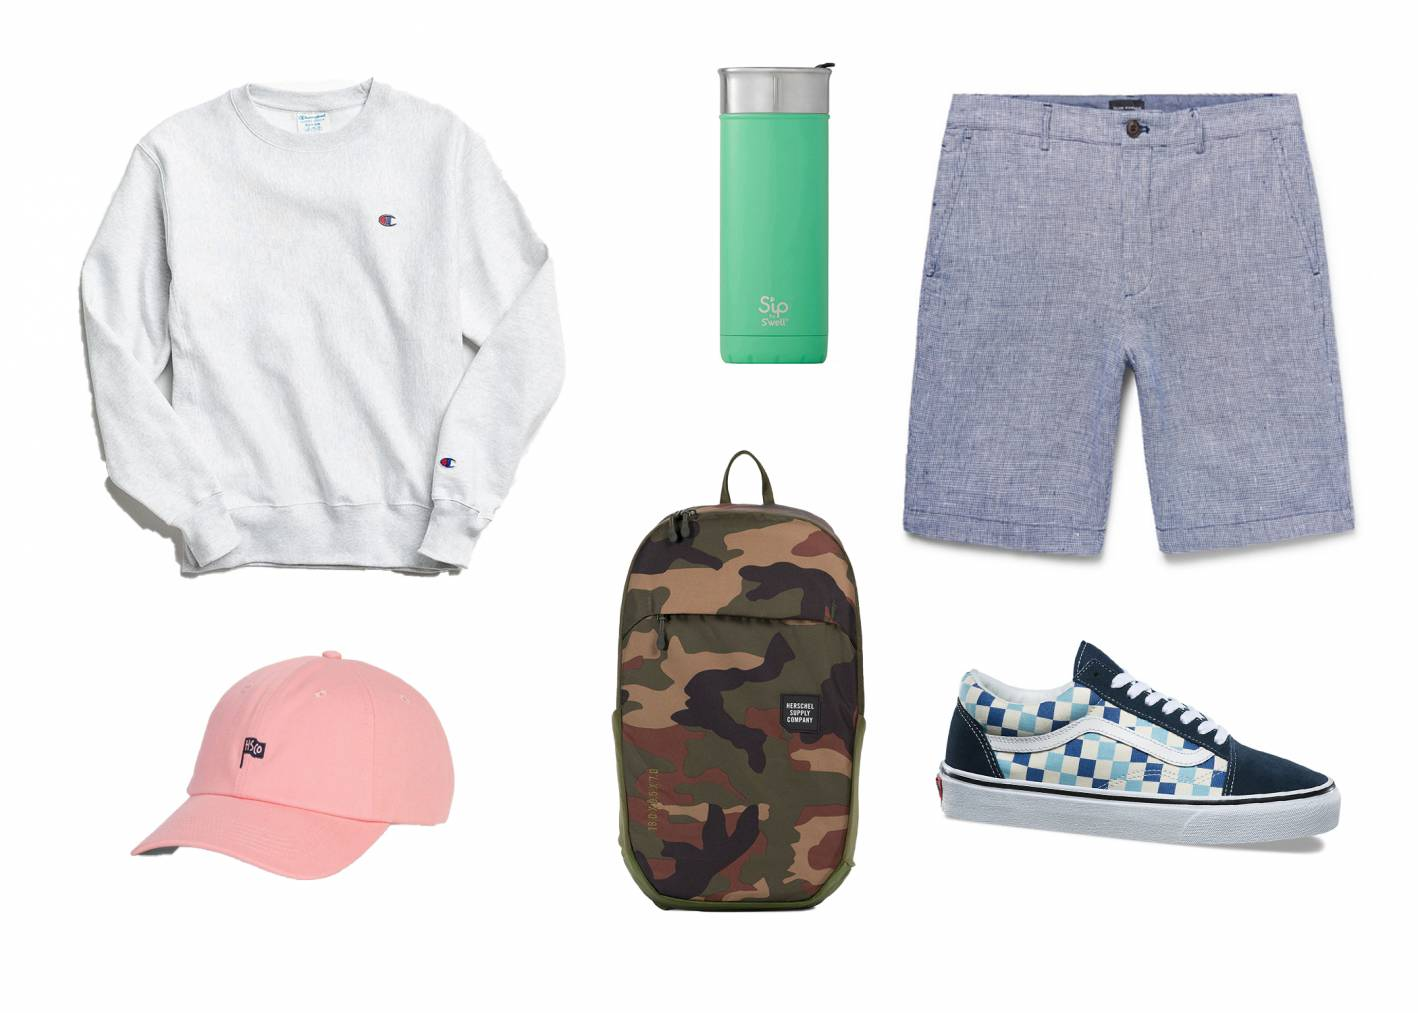 casual summer outfit with linen shorts and sweatshirt